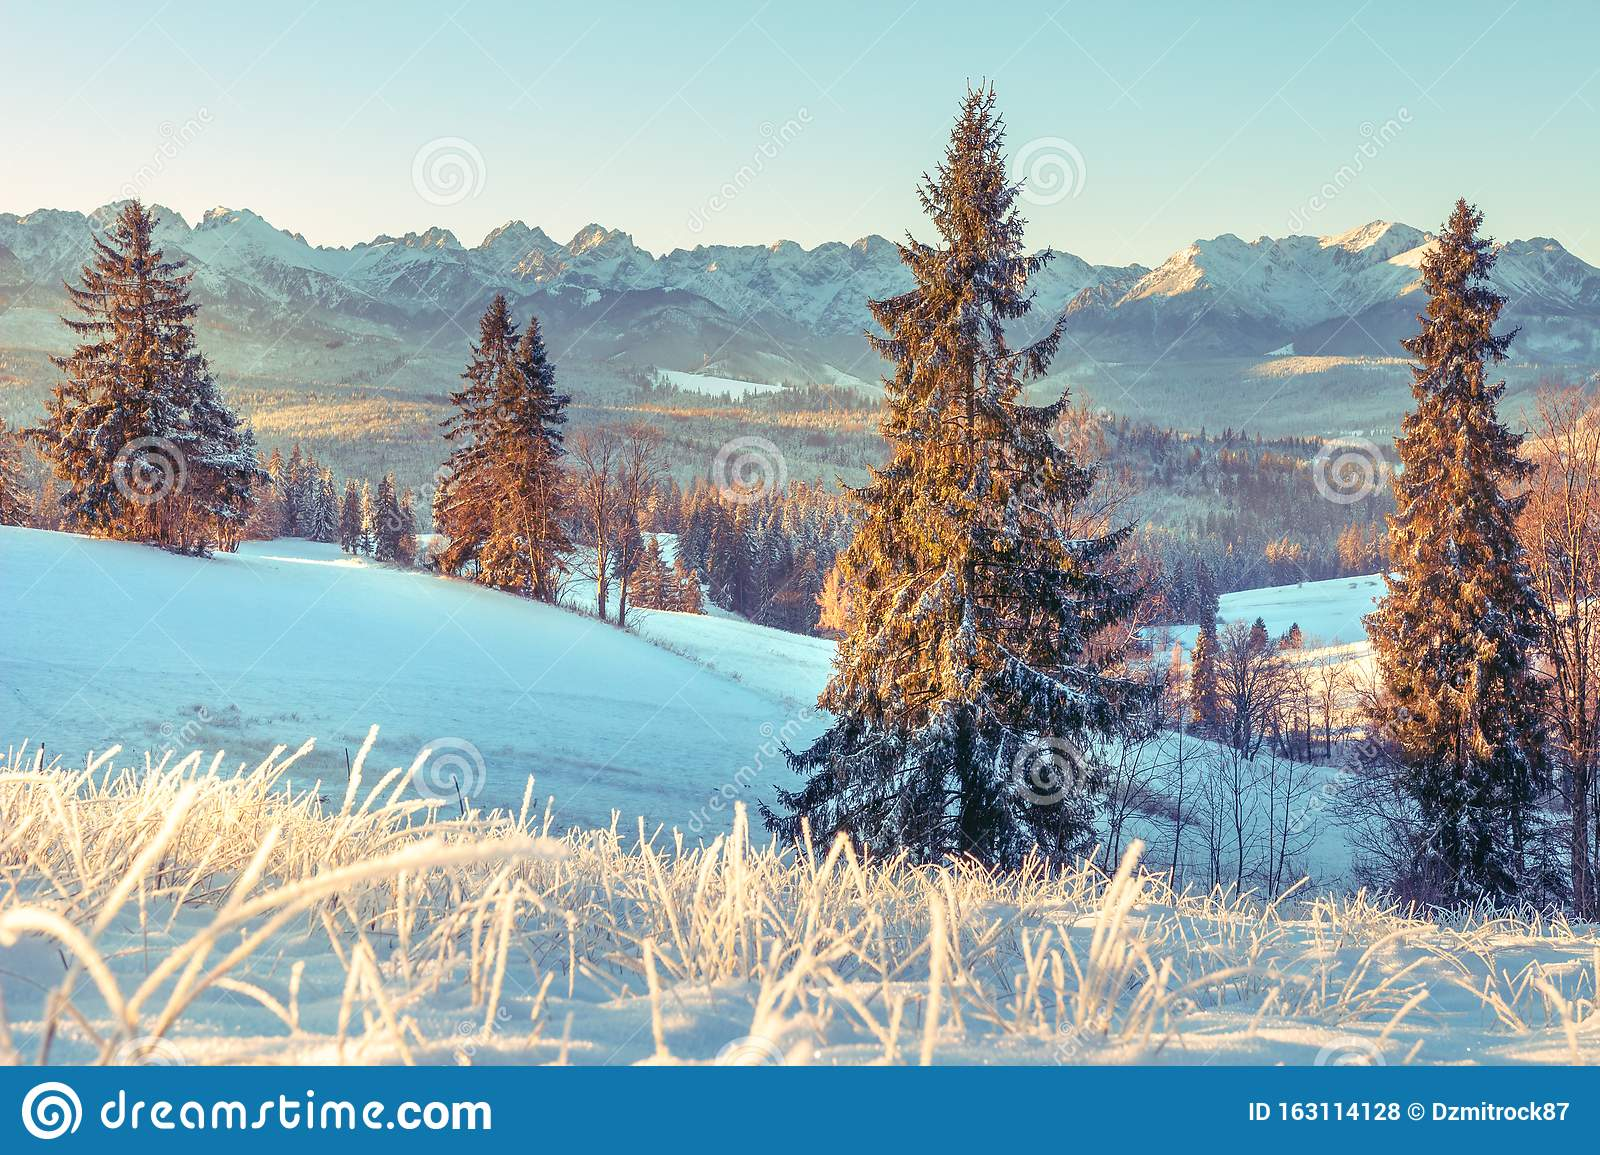 Winter nature in Tatra, Zakopane, Poland. Snowy Christmas trees on mountains valley in sunny morning. Scenery winter